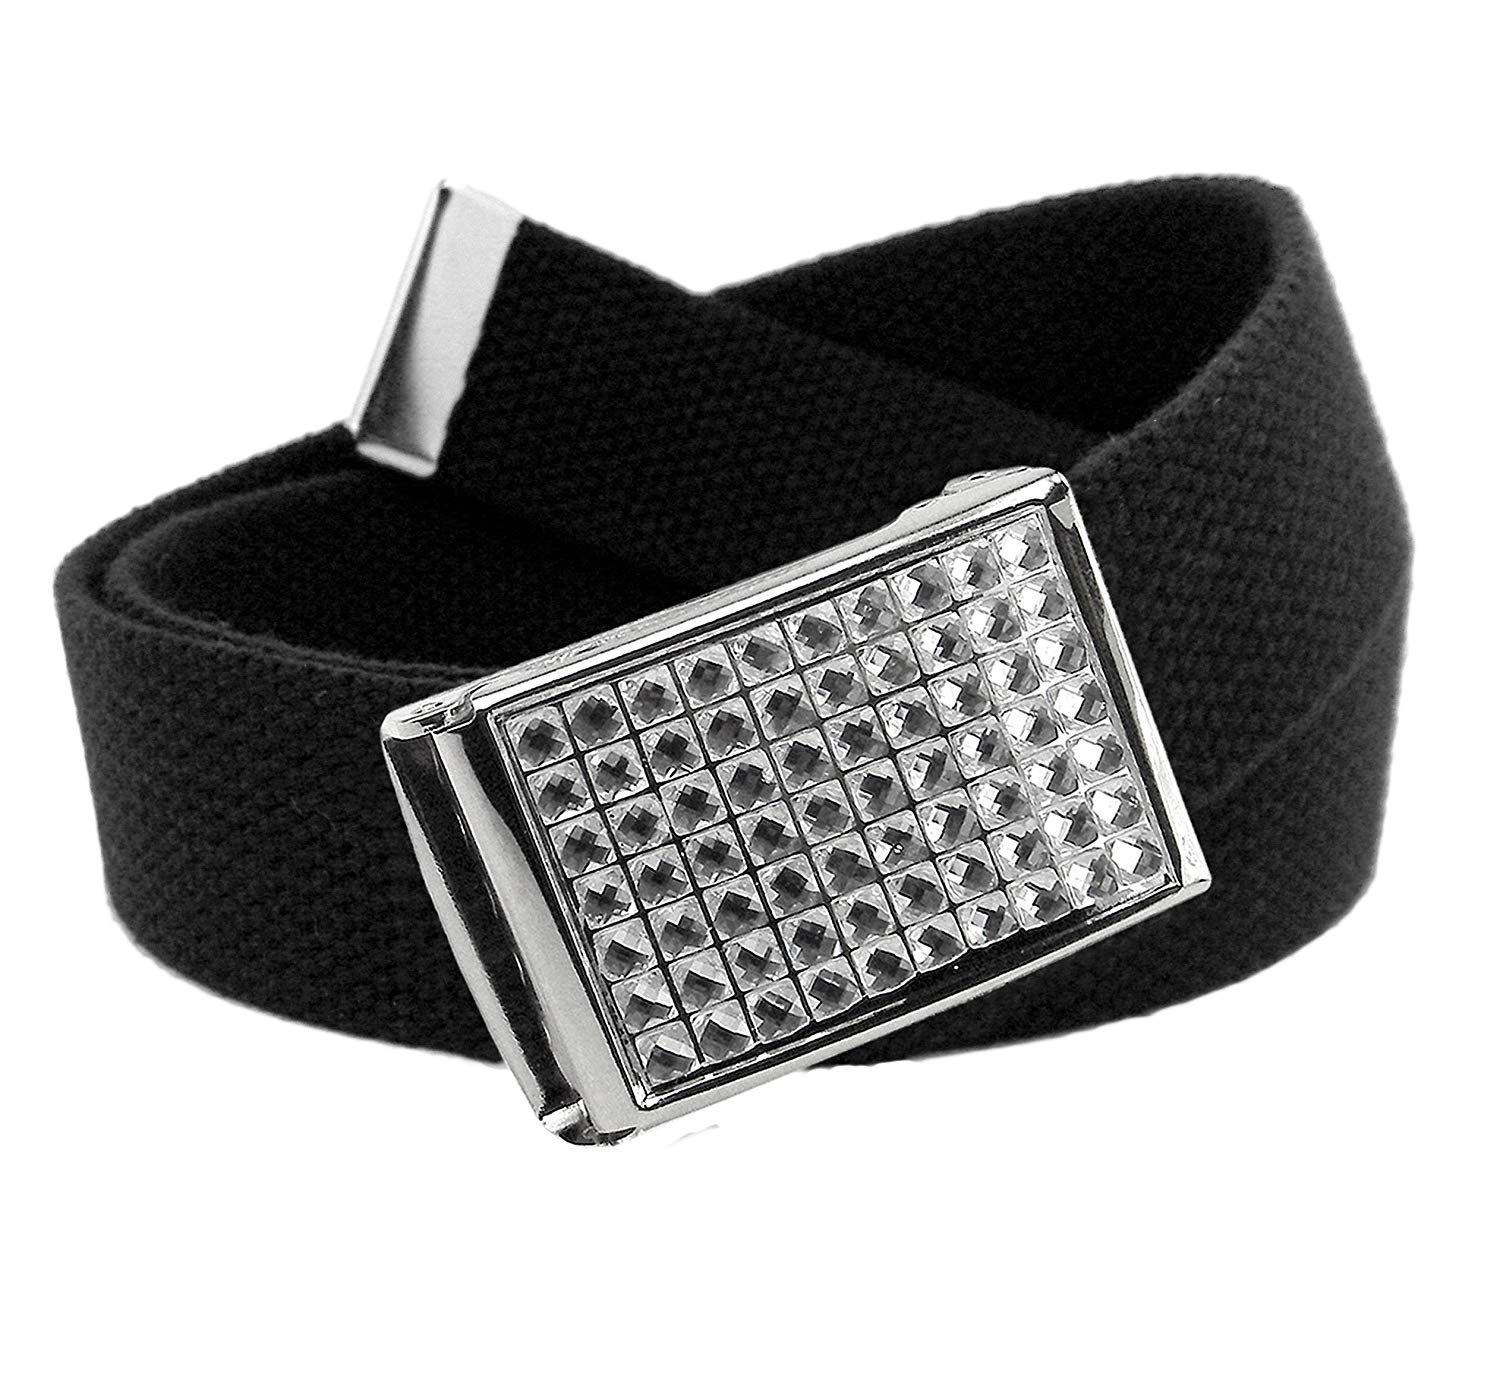 Girl's Easy Snap Crystal Buckle with Adjustable Canvas Belt for School Uniforms